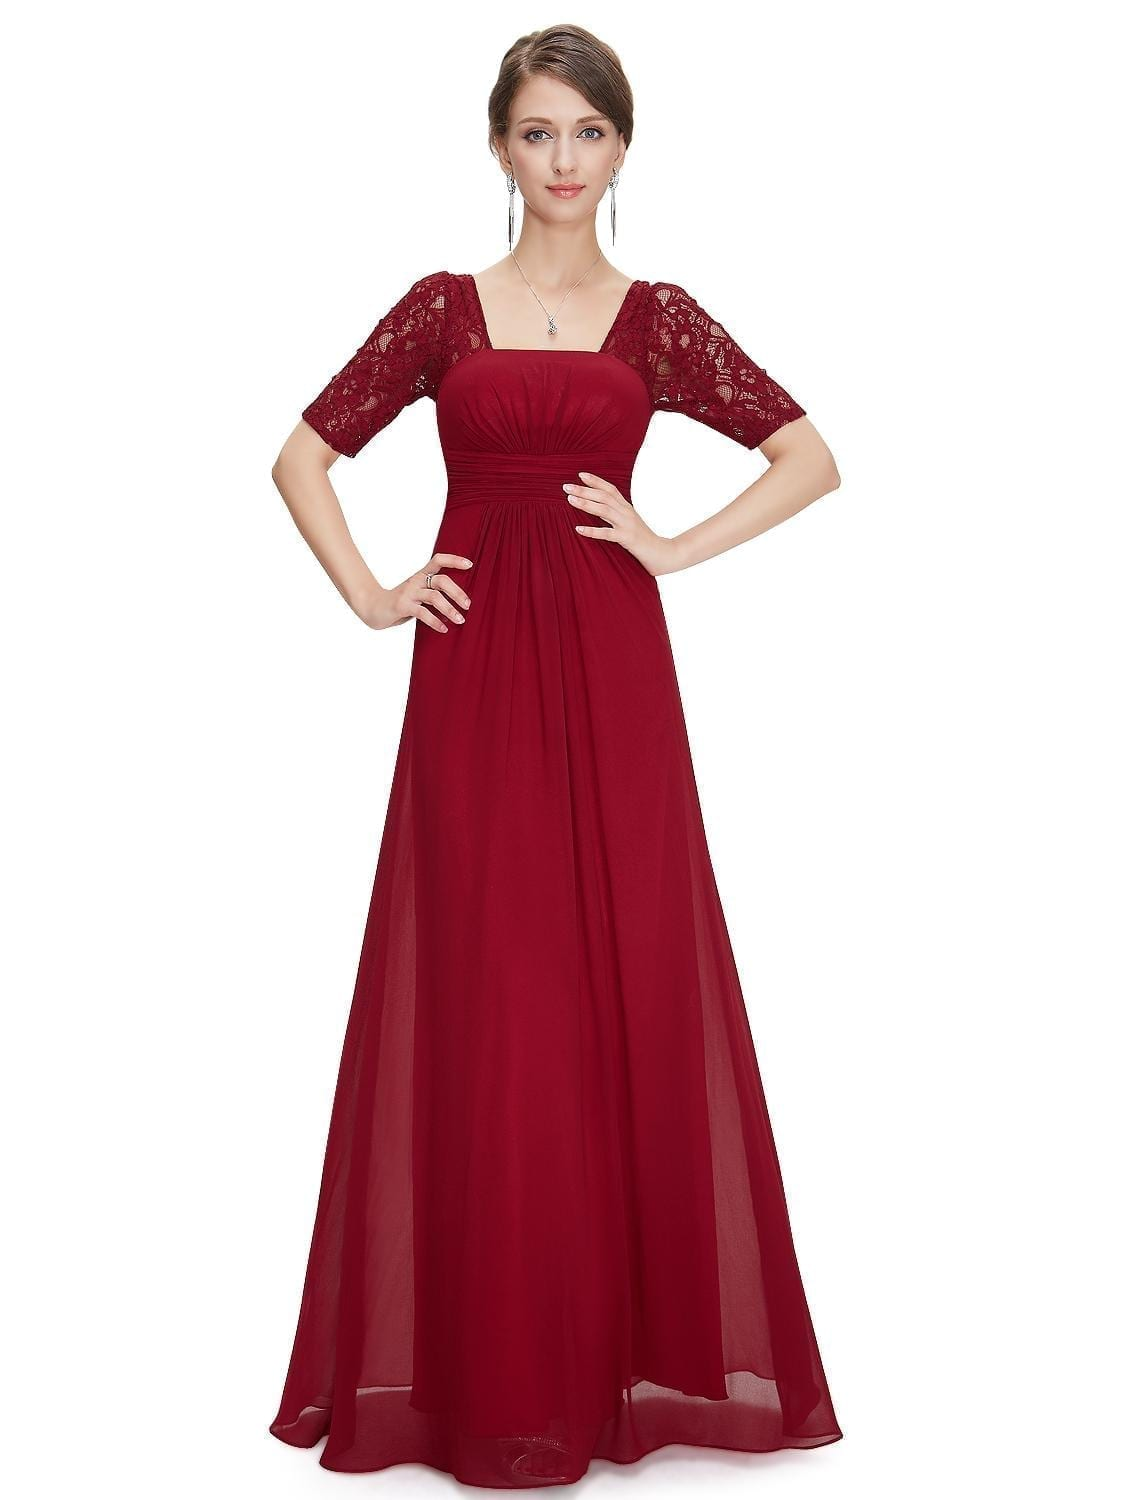 Sexy-fashion-red-lace-square-neckline-long-prom-evening-dress